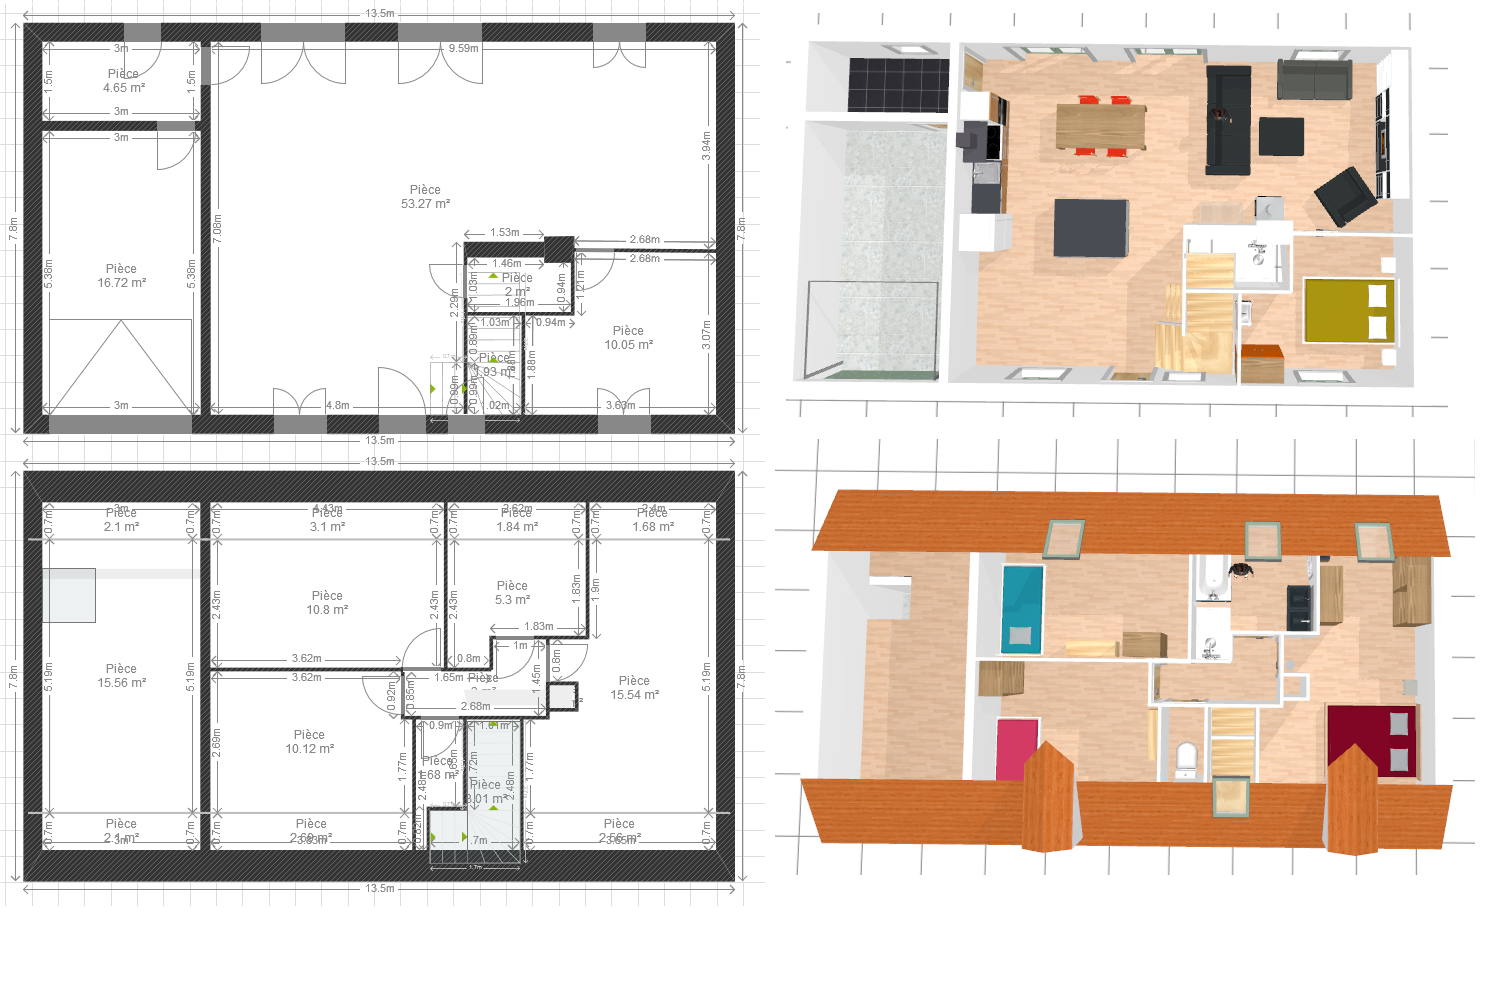 #7E0E26 Avis Plan De Maison Merci D'avance ! 58 Messages 3017 plan maison suite parentale dressing 1500x1000 px @ aertt.com